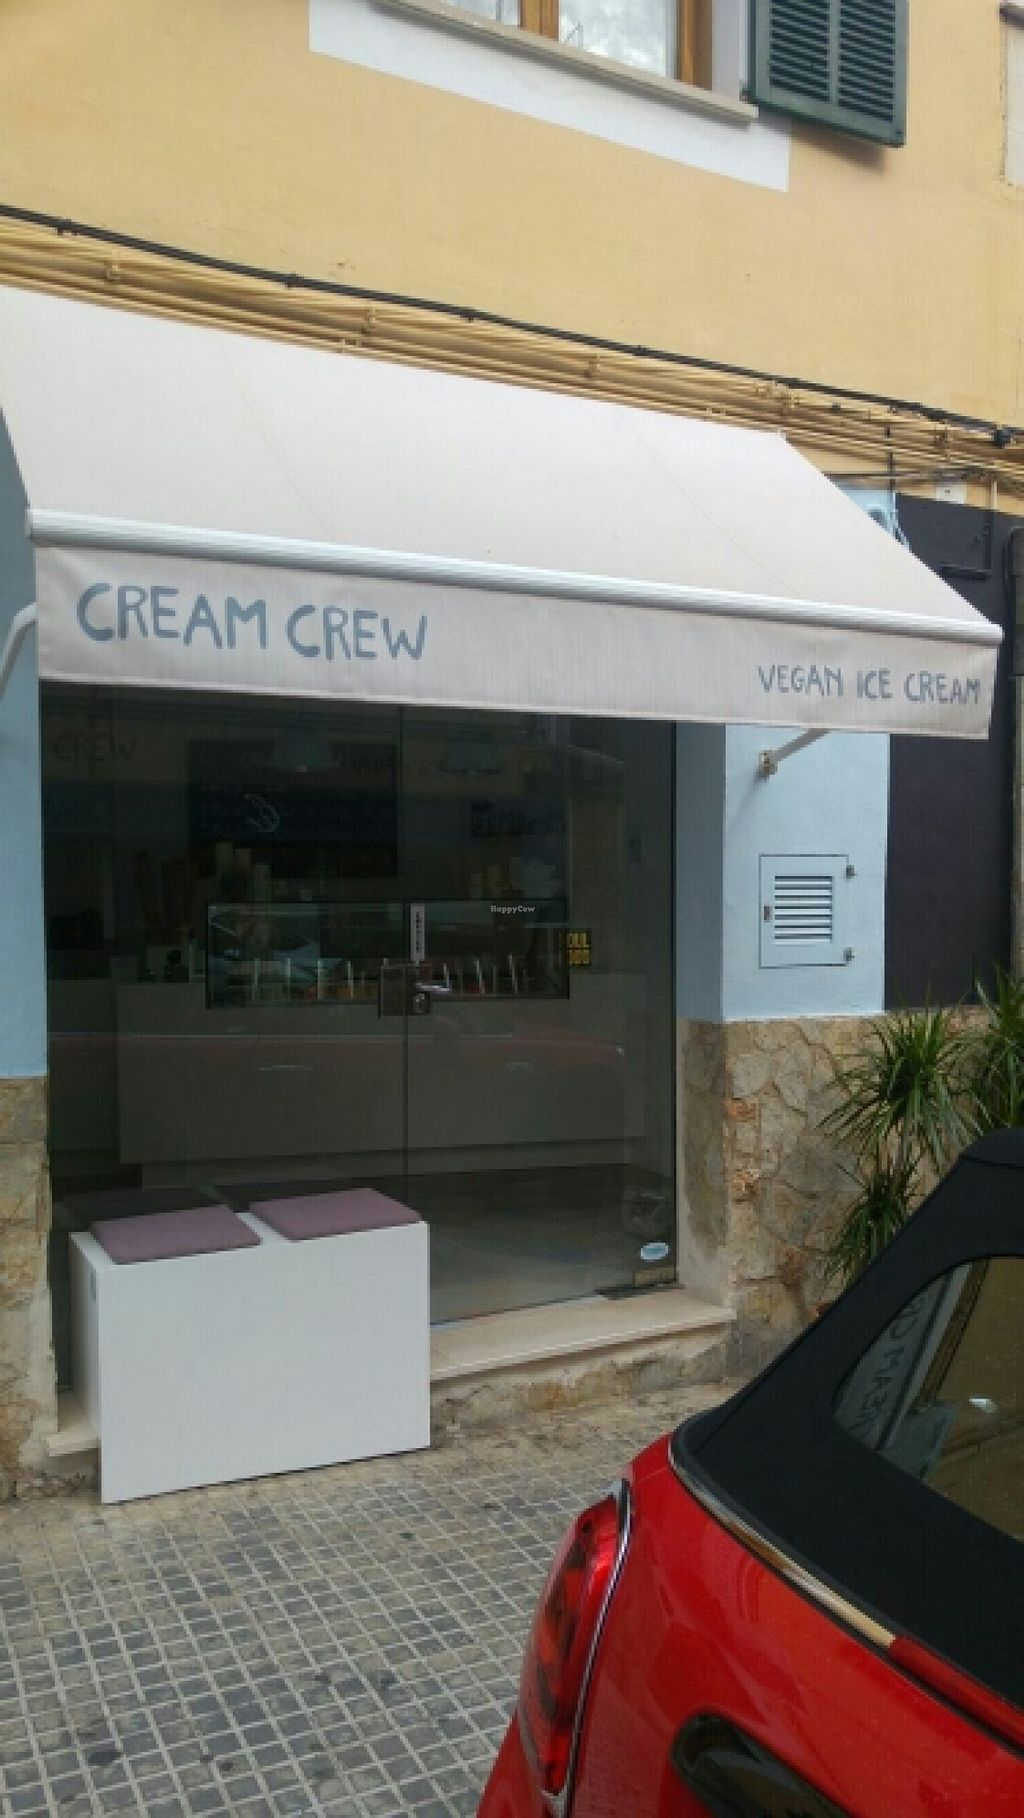 """Photo of Cream Crew  by <a href=""""/members/profile/Melissaj1990"""">Melissaj1990</a> <br/>Shop front  <br/> July 8, 2016  - <a href='/contact/abuse/image/67479/158515'>Report</a>"""